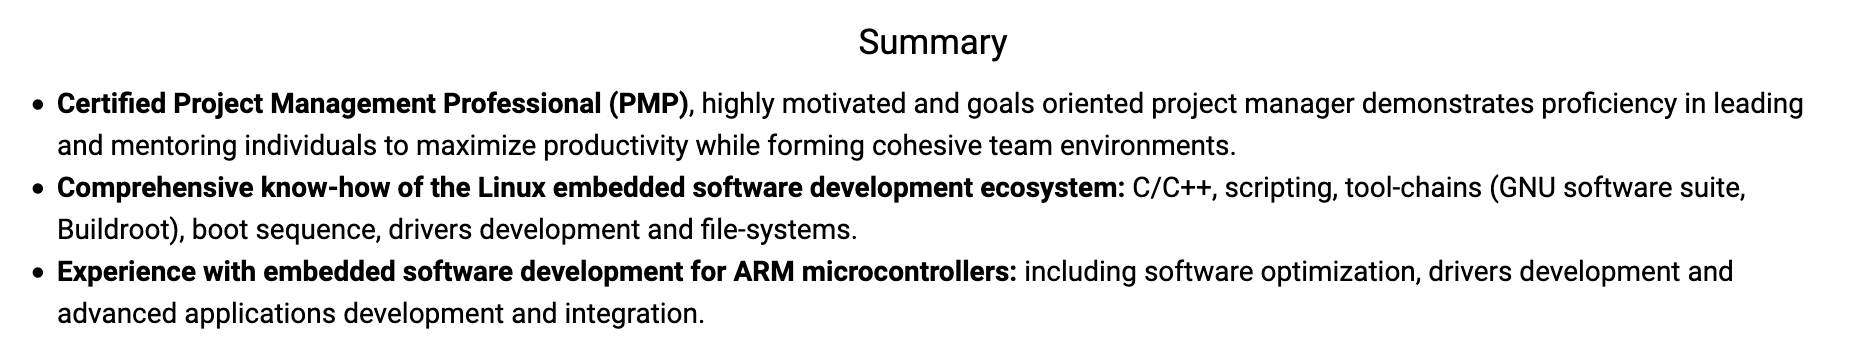 Software Project Manager Summary Statement